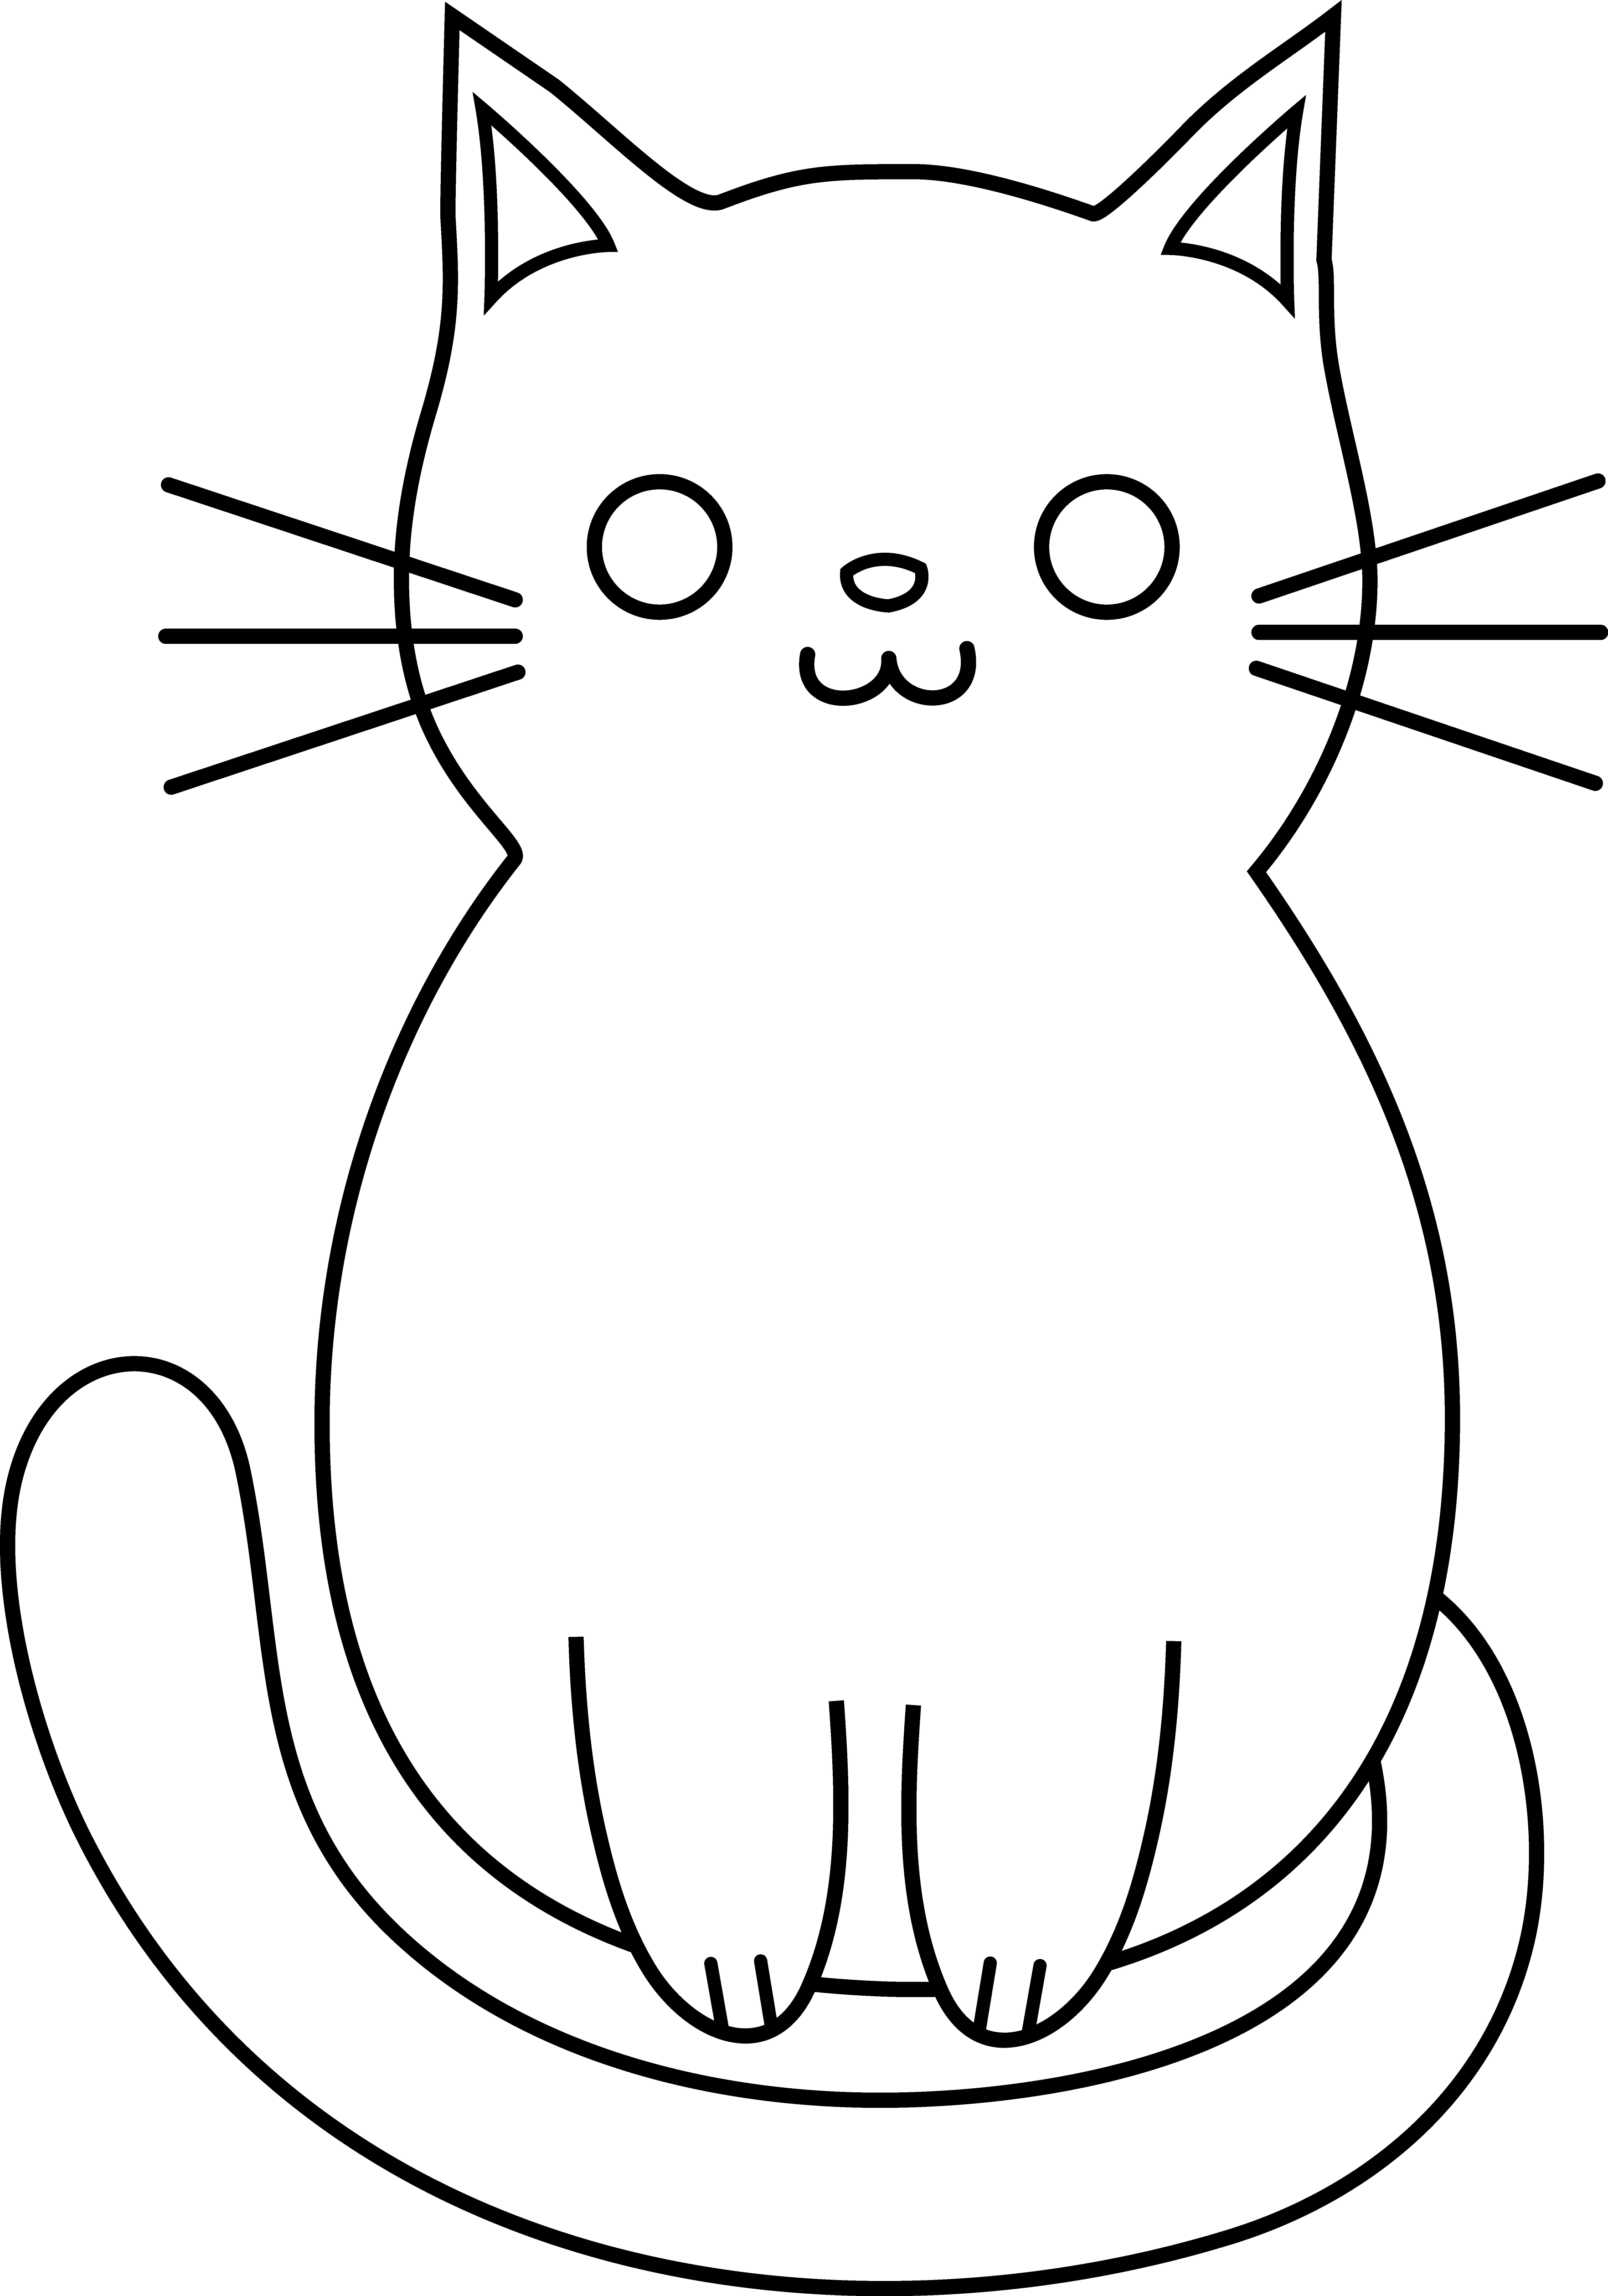 3528x5039 Simple Cat Face Drawing Nice Concept Of Cat Drawings Easy Funny